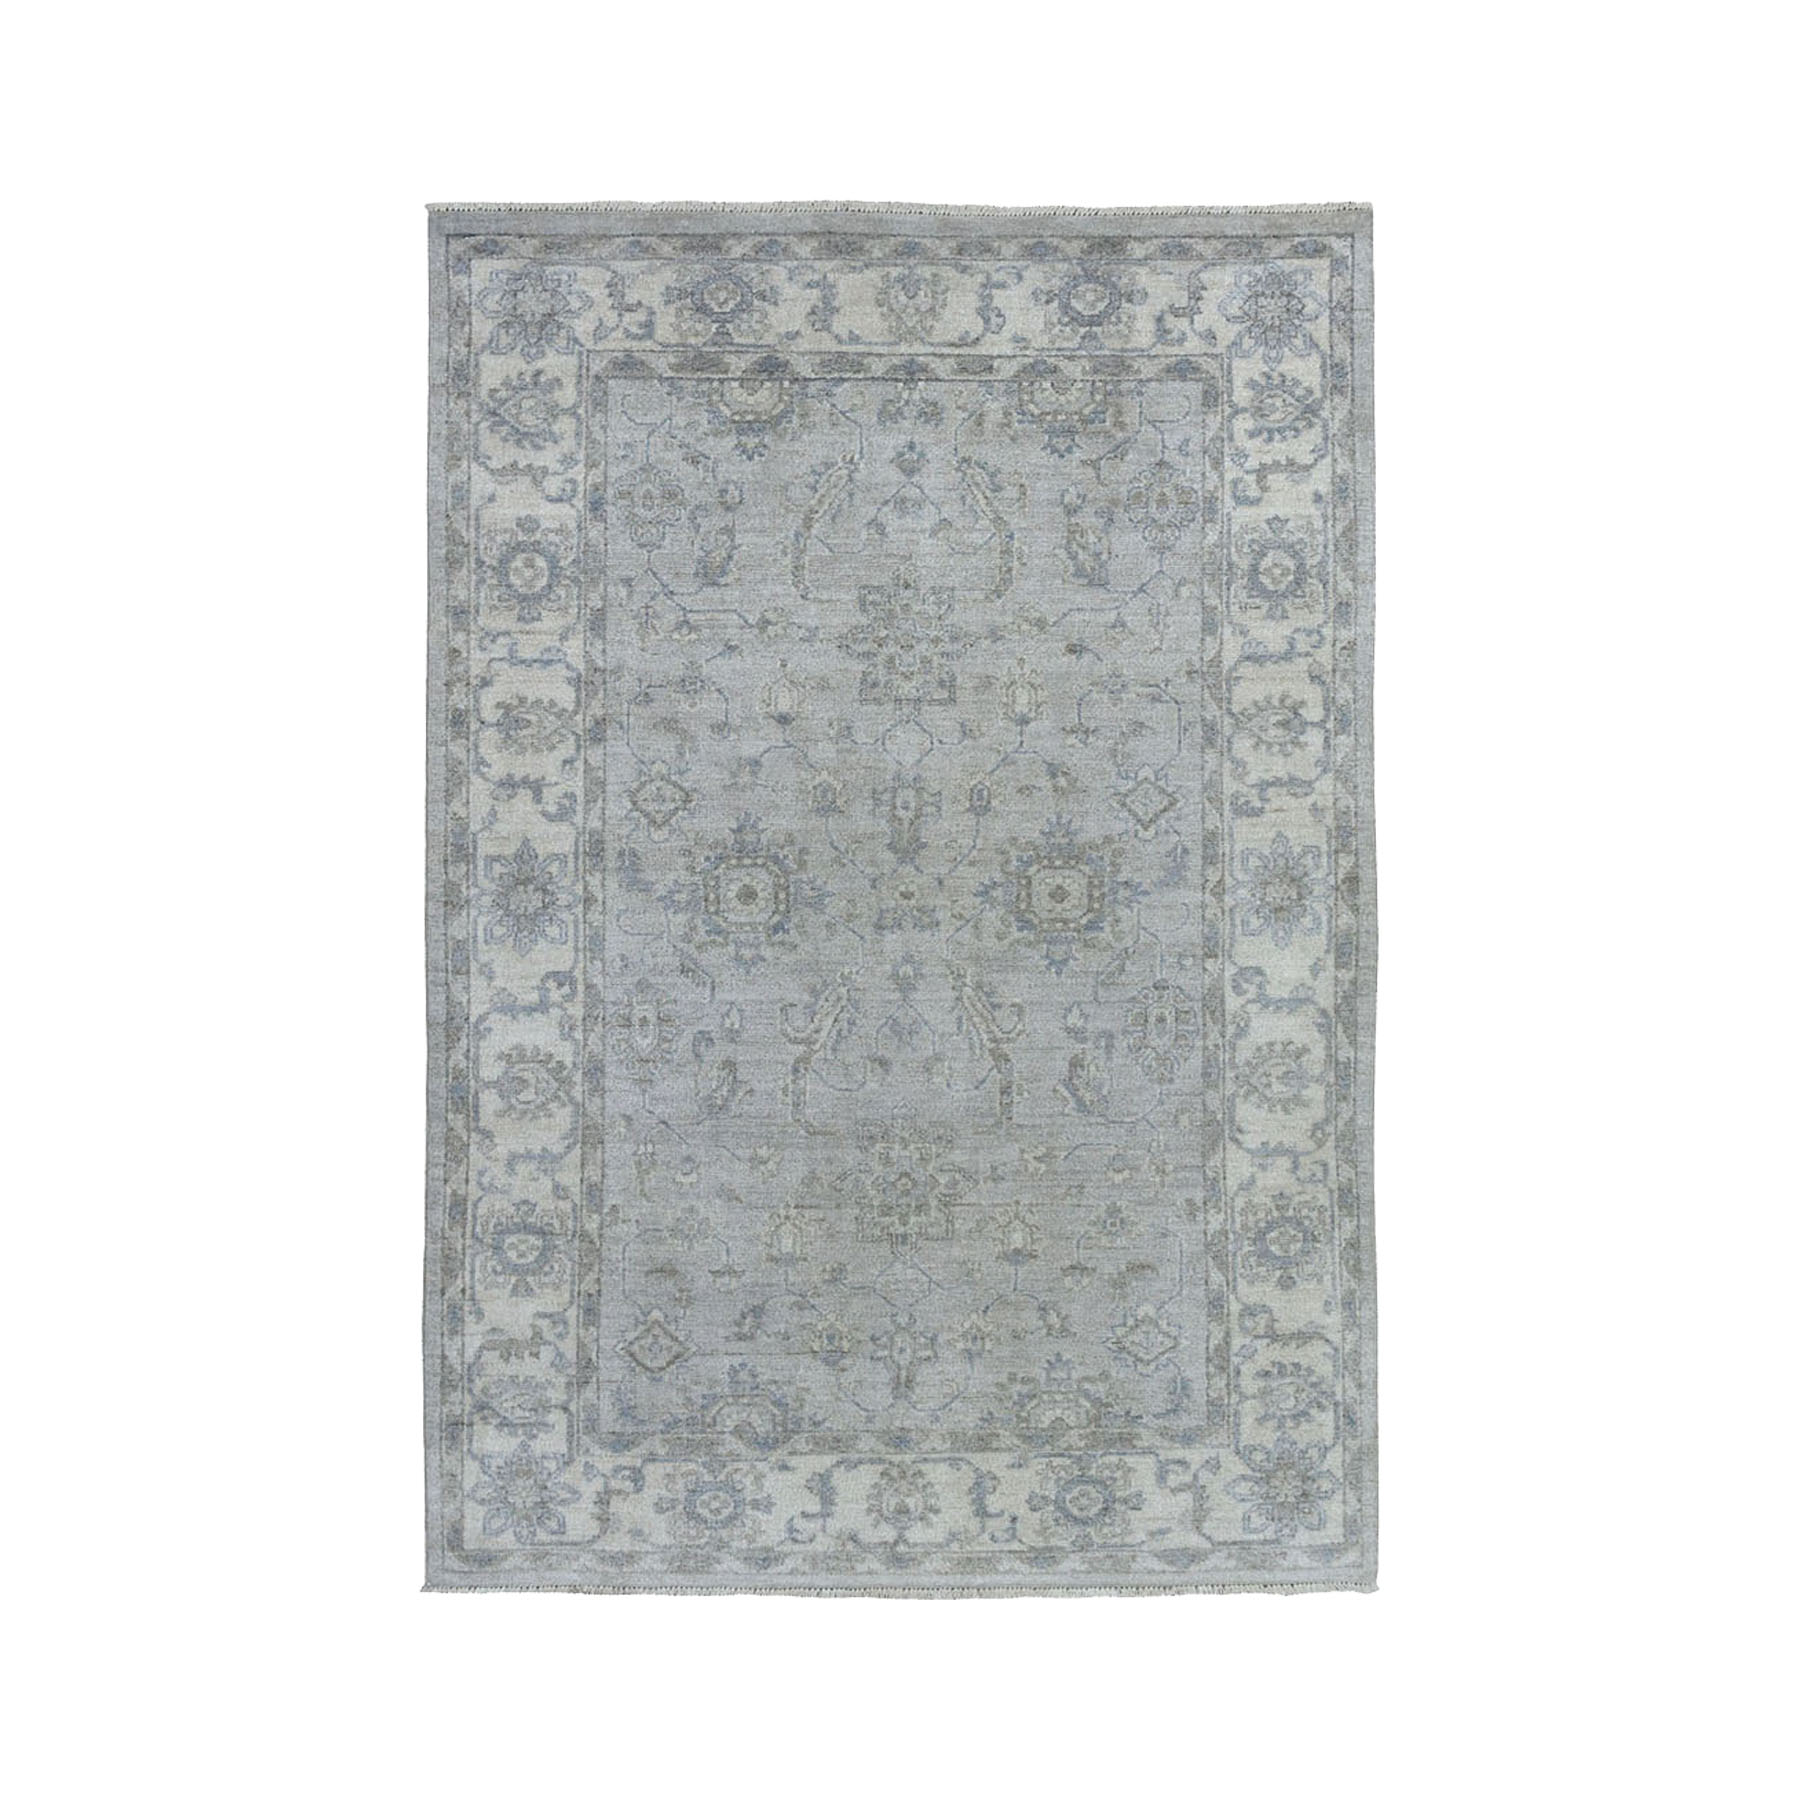 "4'X5'10"" Gray White Wash Peshawar With Karajeh Design Pure Wool Hand-Knotted Oriental Rug moae0e90"